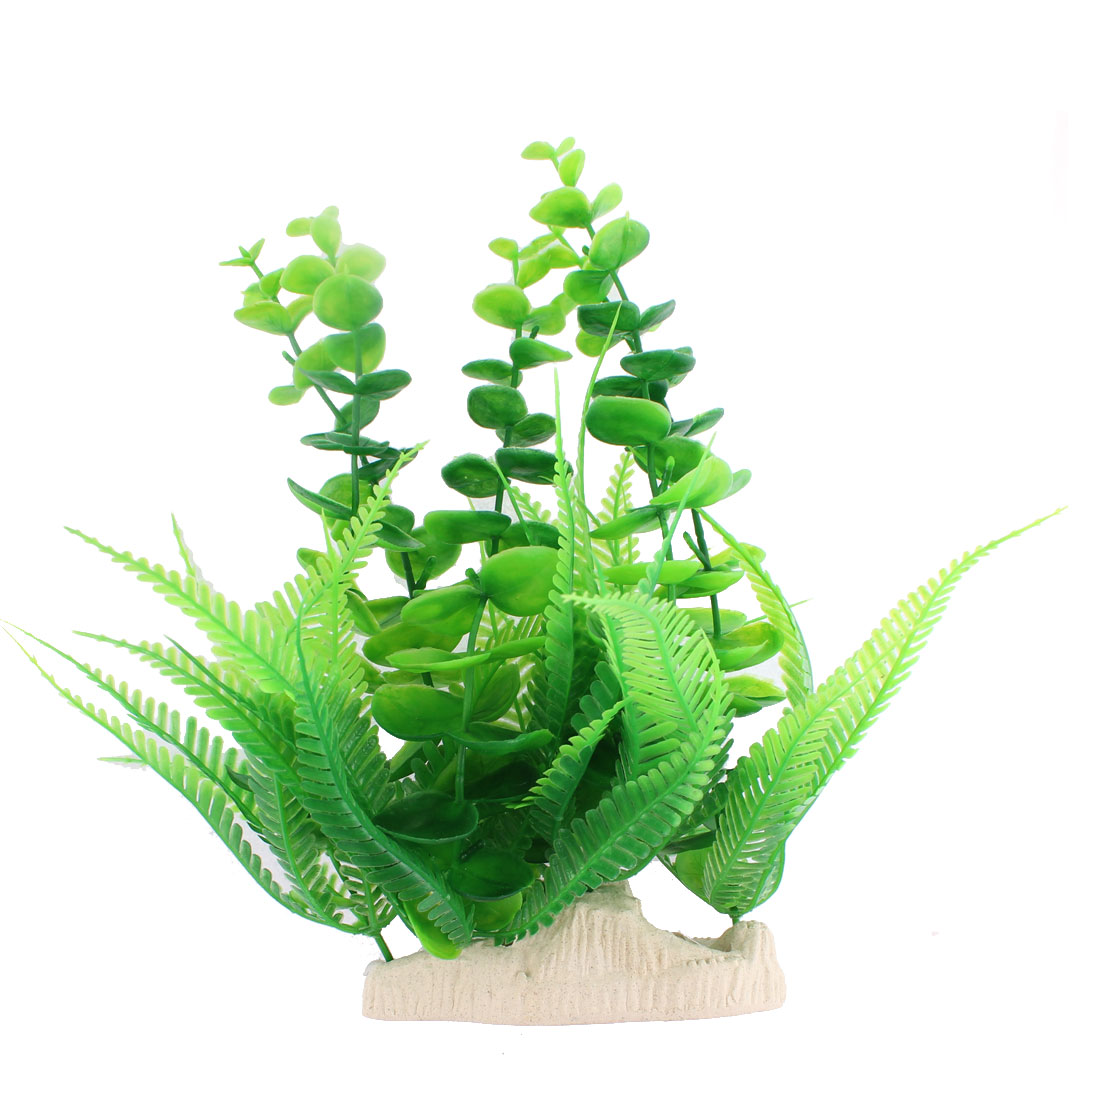 "Fish Tank Aquarium Plastic Artificial Plant Underwater Grass Decor 9"" Height"